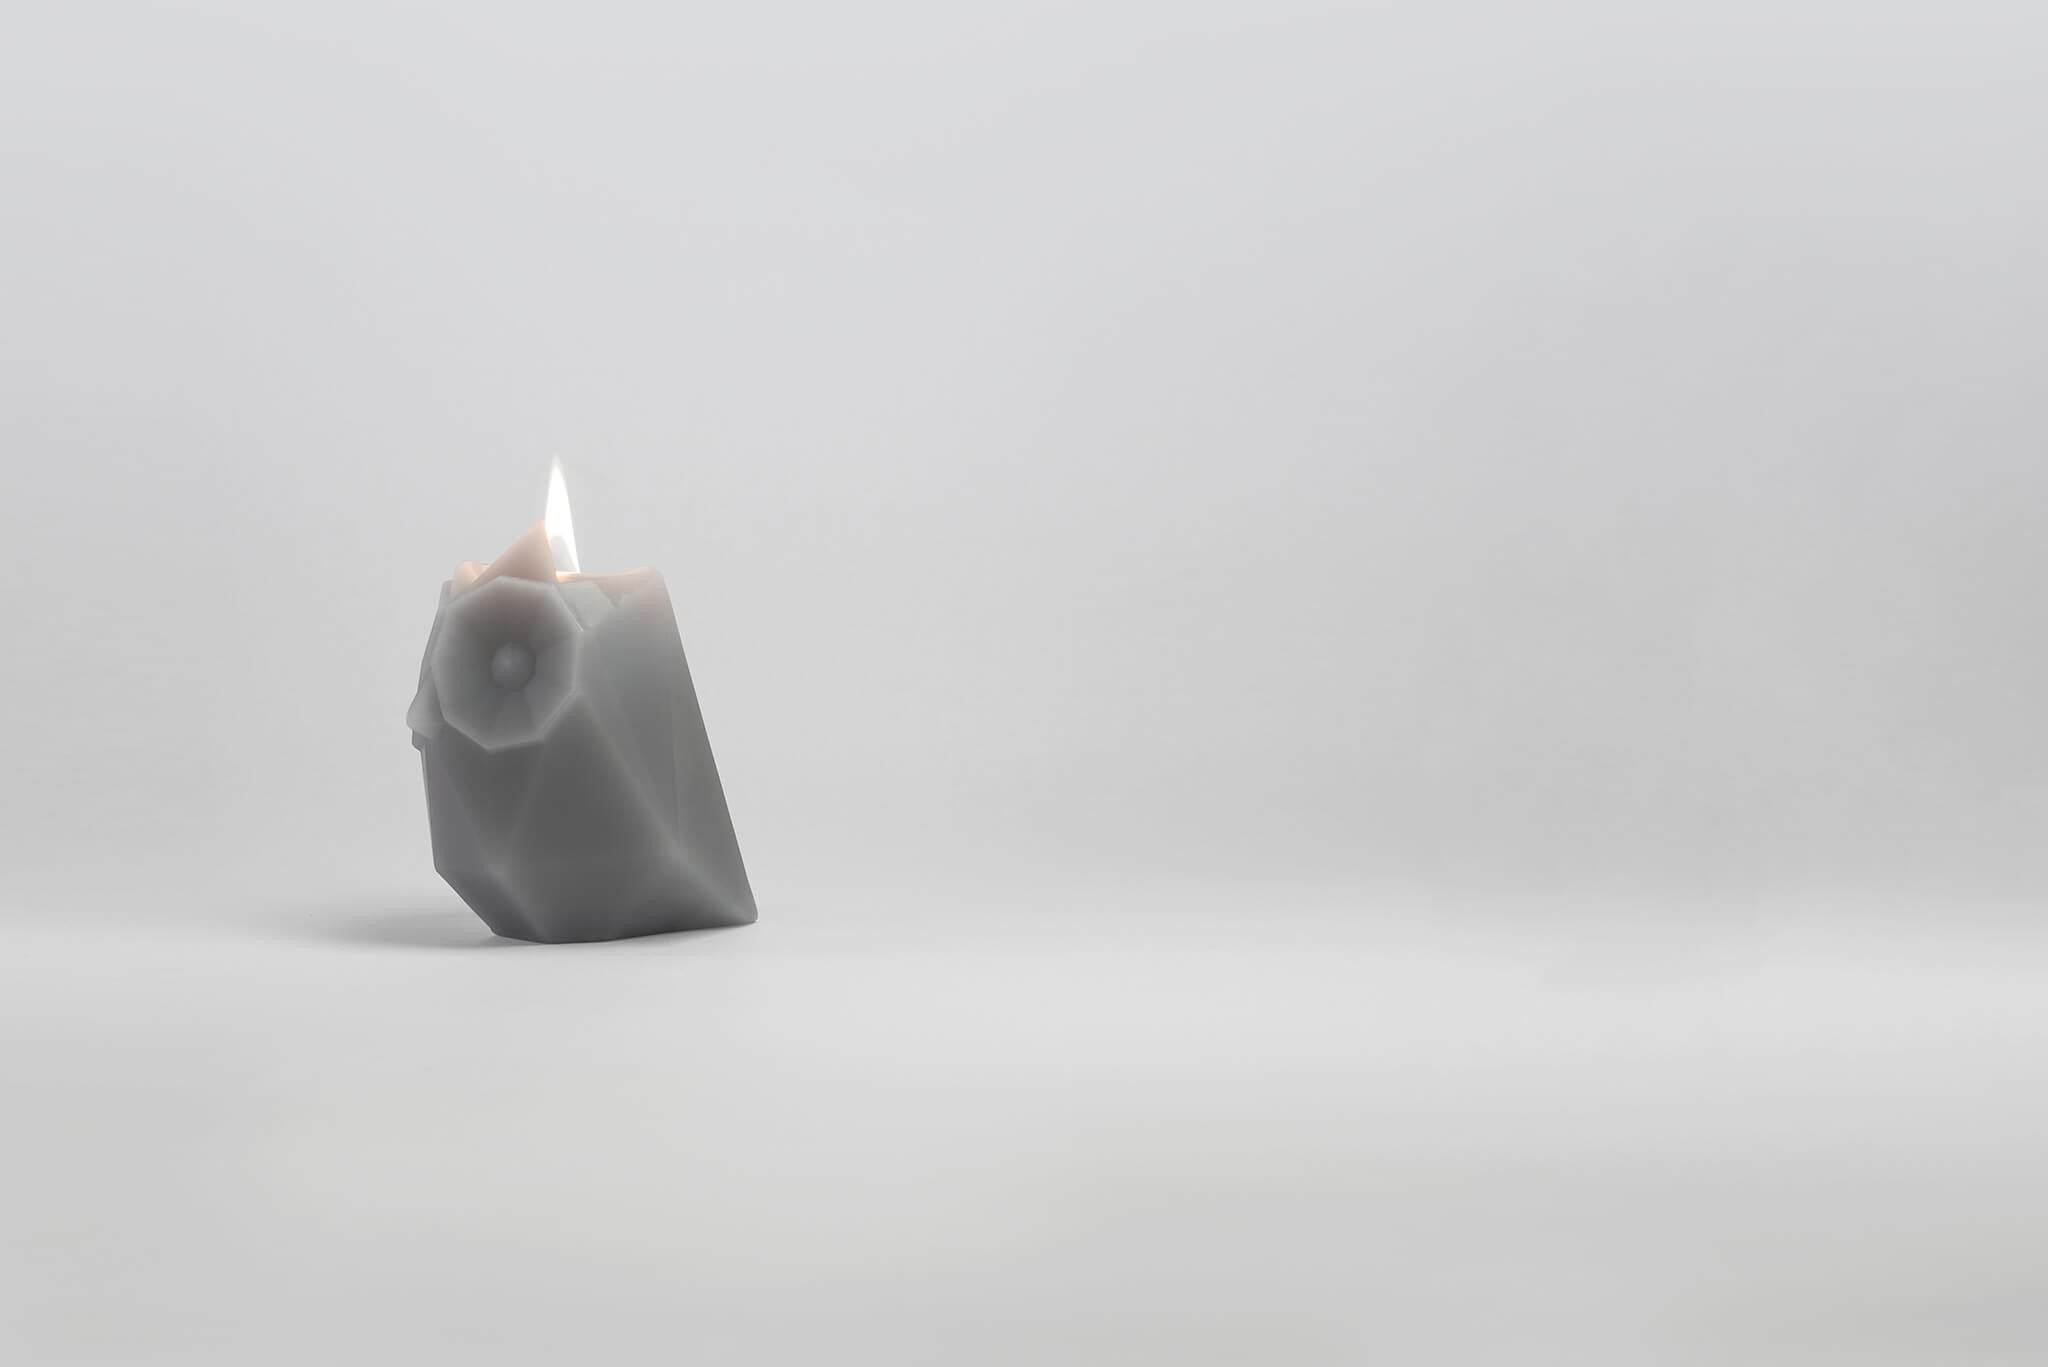 Side view of grey ugla the owl shaped pyropet candle with wick burning.